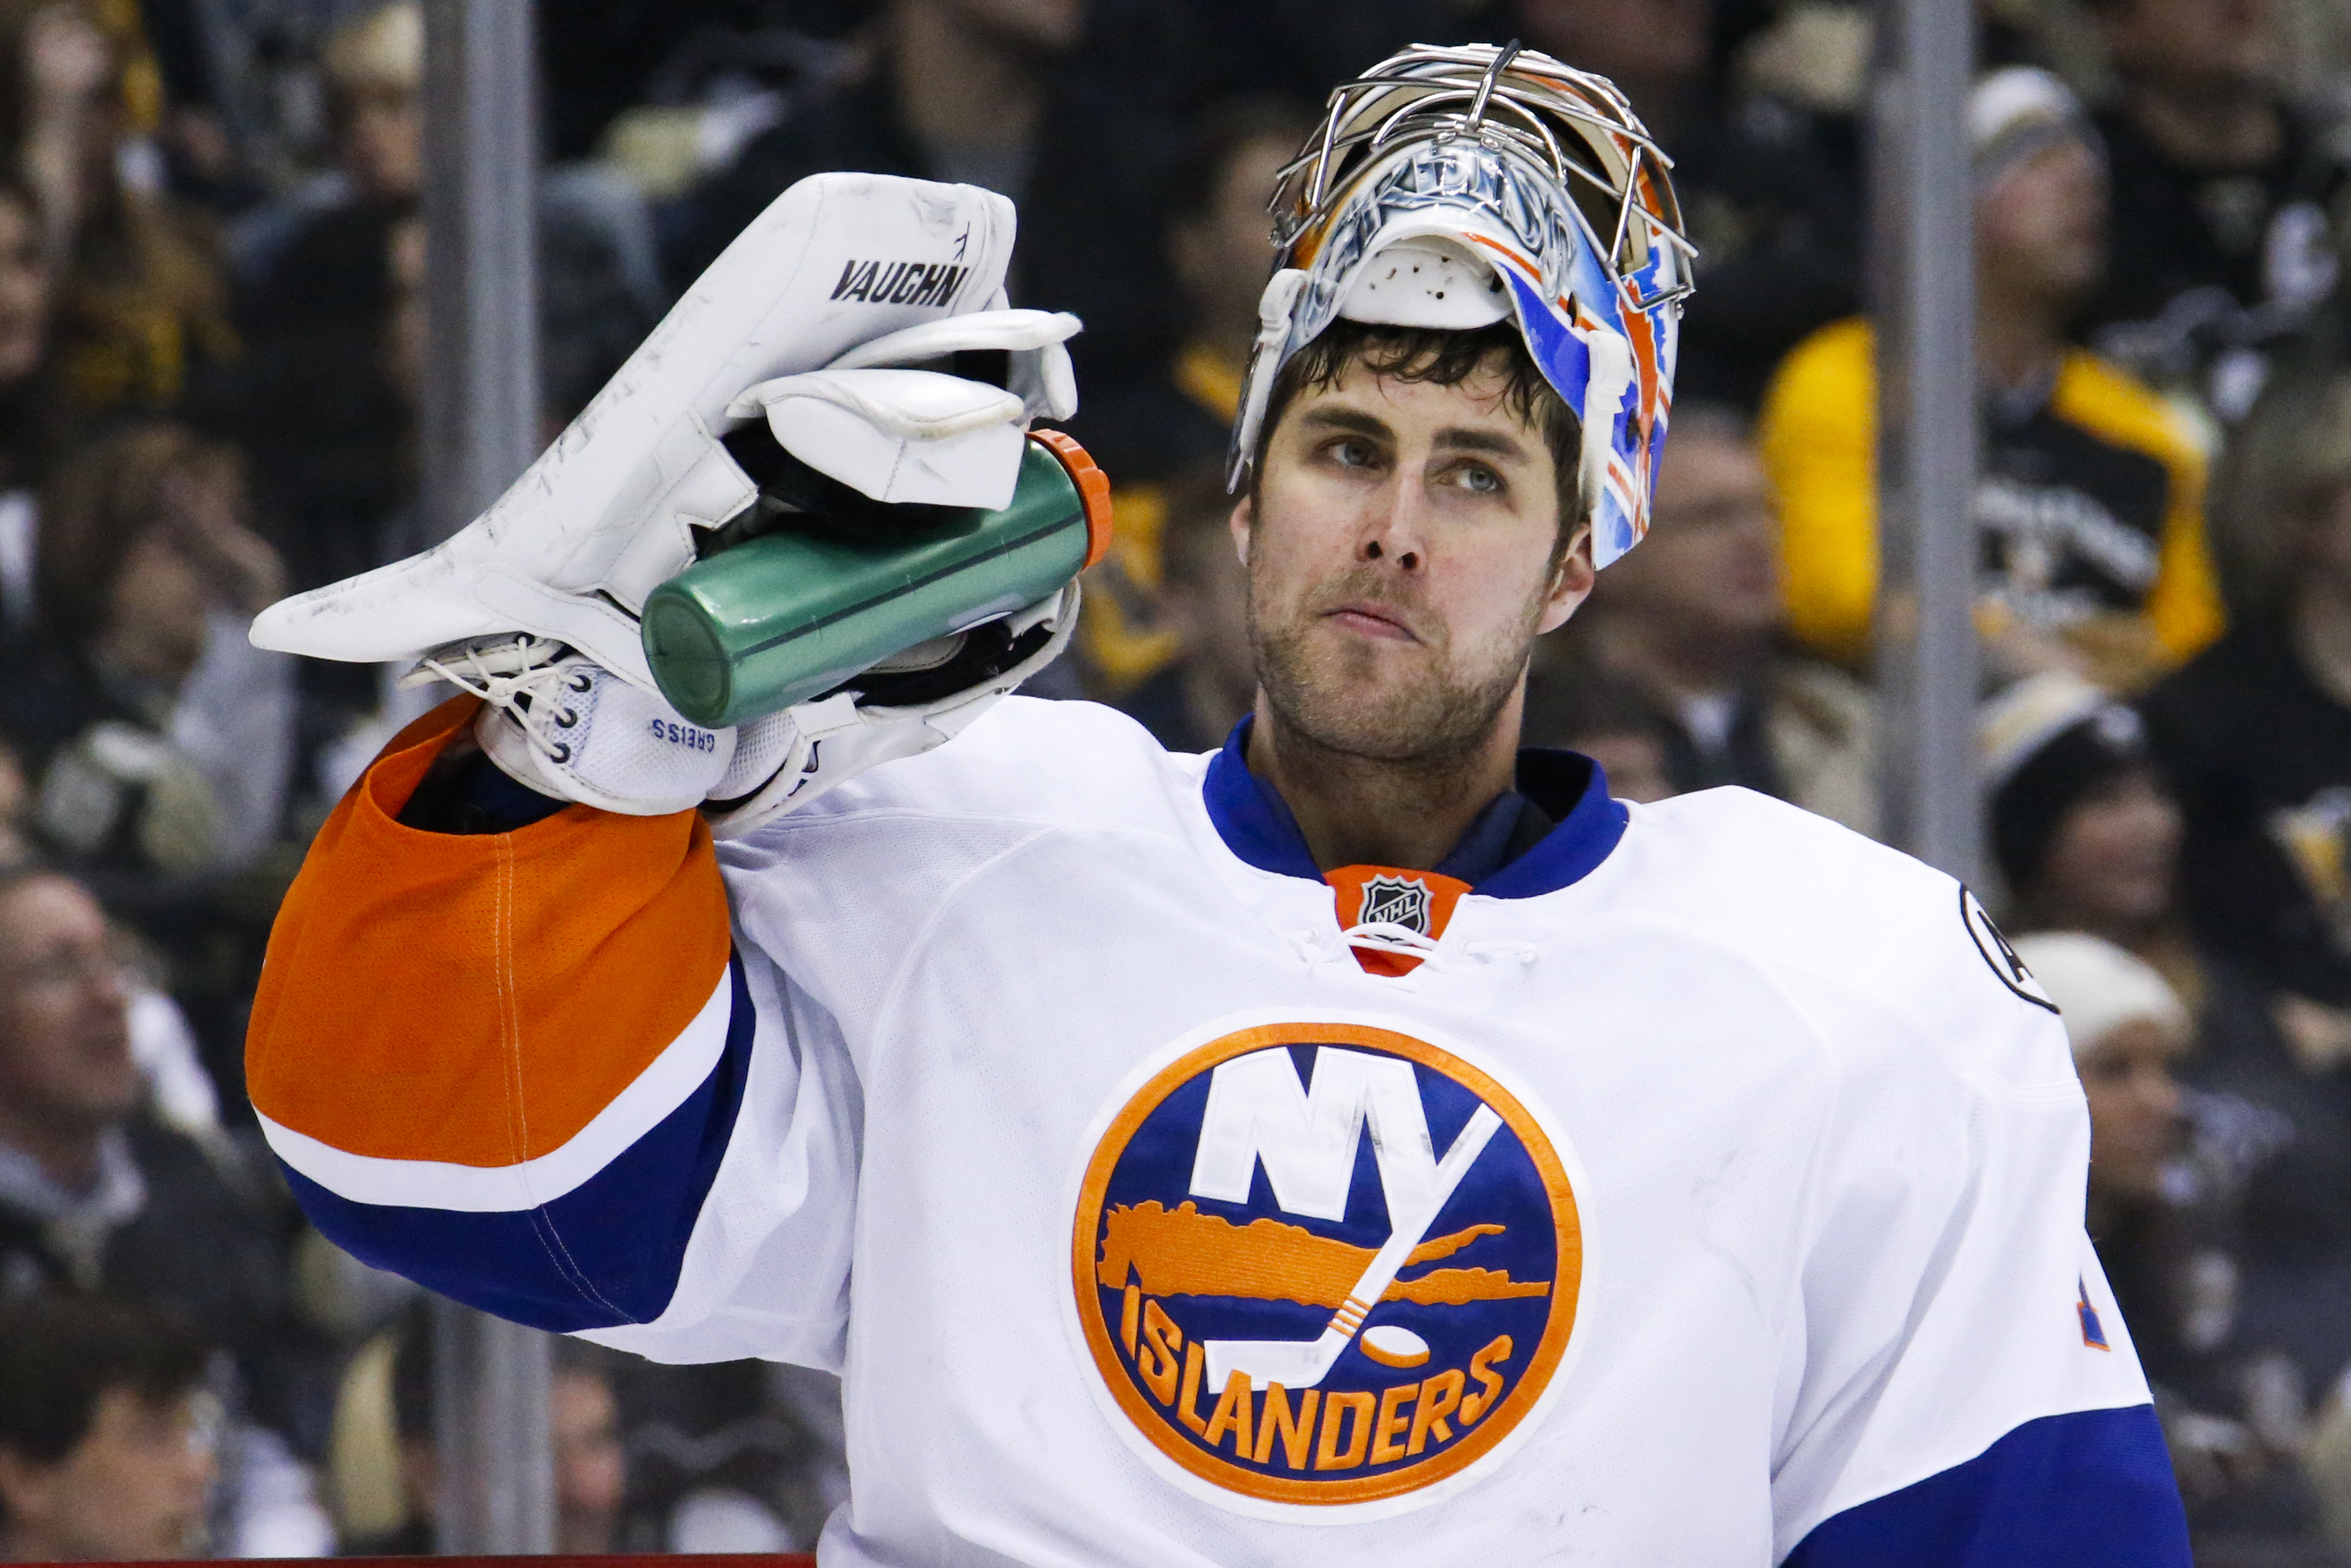 New York Islanders goalie Thomas Greiss takes a drink after giving up a goal to Pittsburgh Penguins' Sidney Crosby during the second period of an NHL hockey game in Pittsburgh, Saturday, Jan. 2, 2016. (AP Photo/Gene J. Puskar)